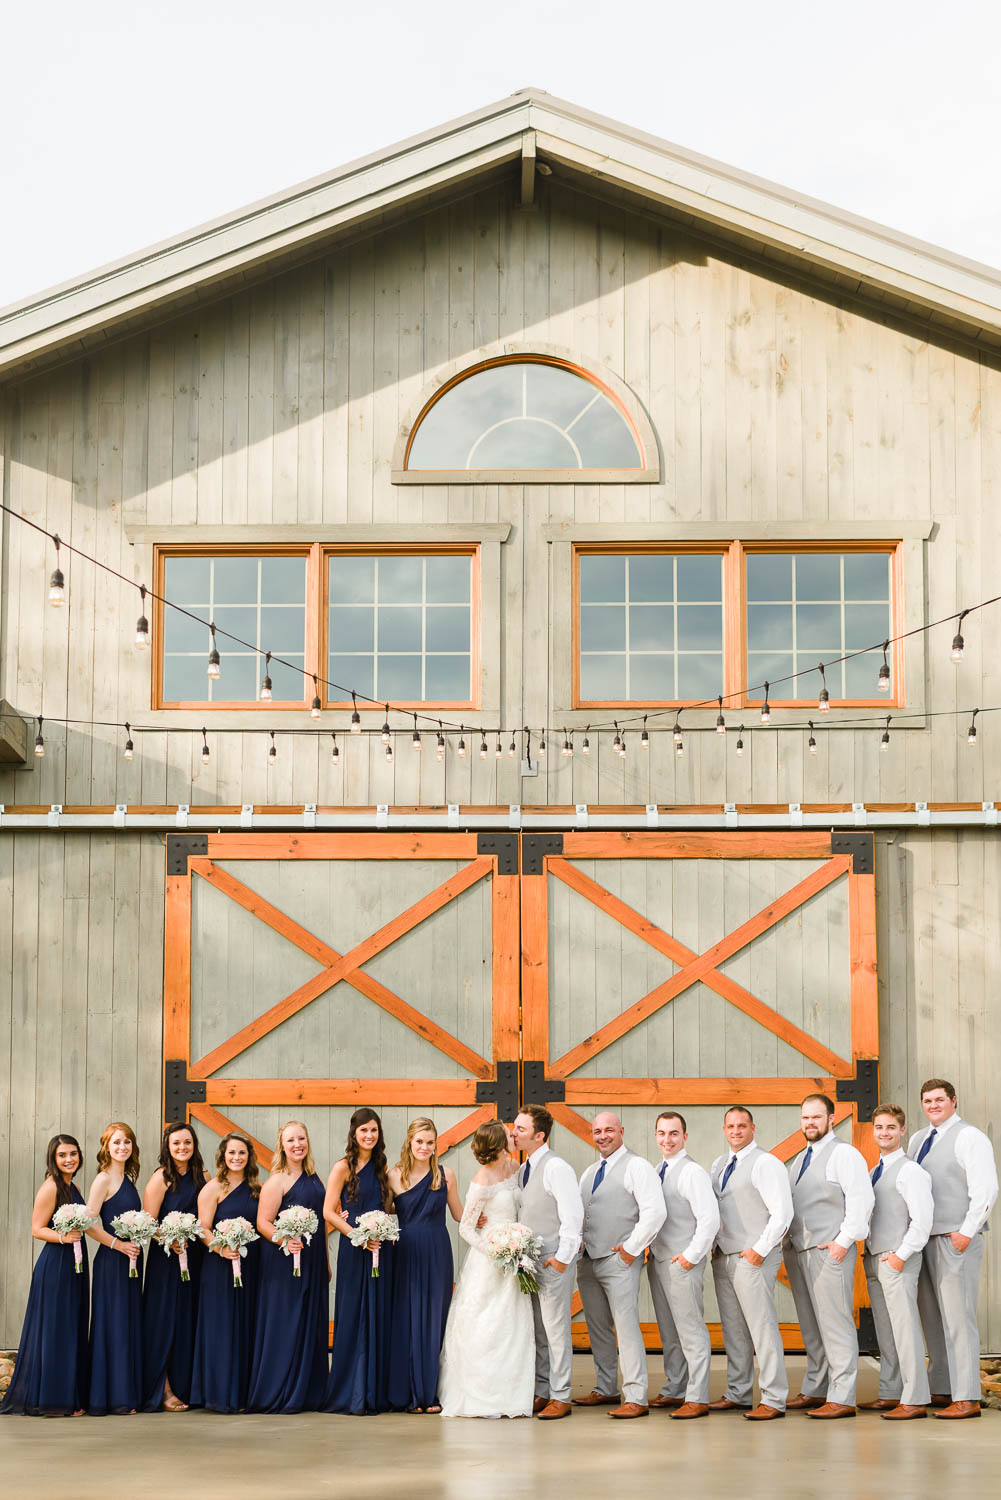 wedding party right in front of the big wooden doors of the barn at 4Points Farm venue in Gatlinburg TN